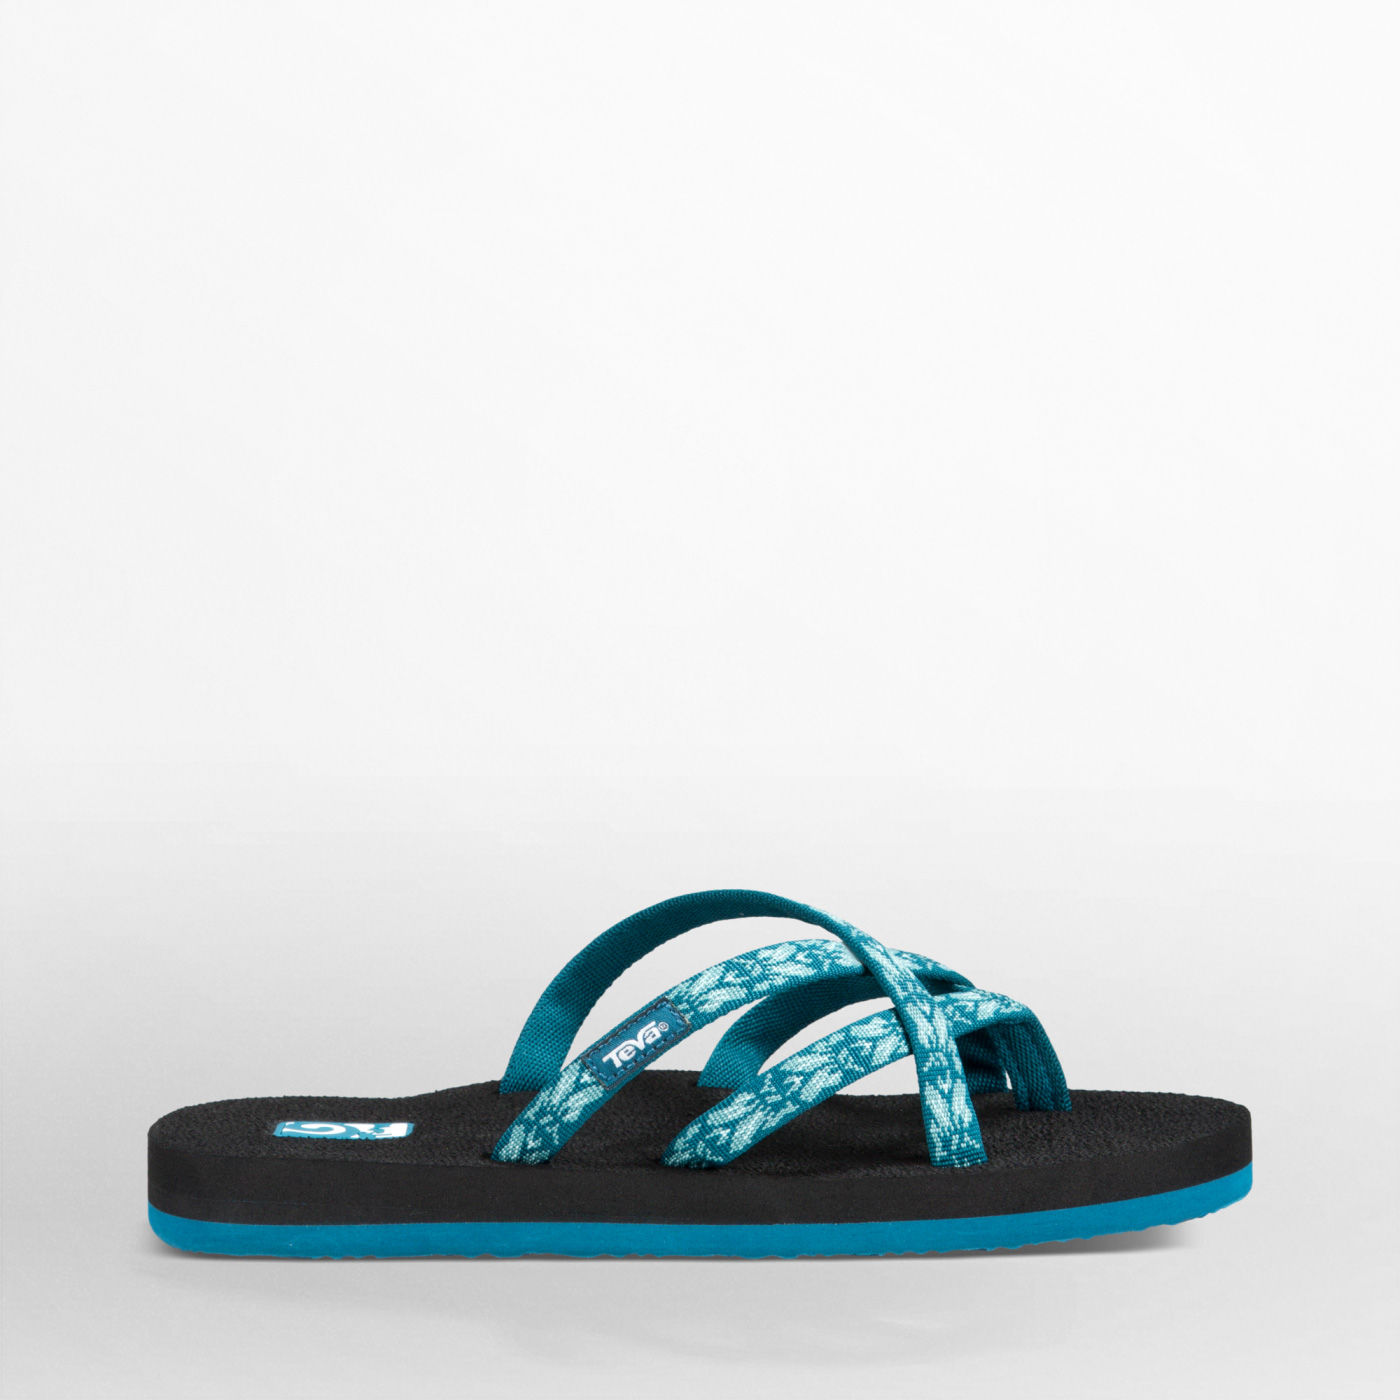 Teva® Women's Olowahu Slip-On Sandals | Teva.com